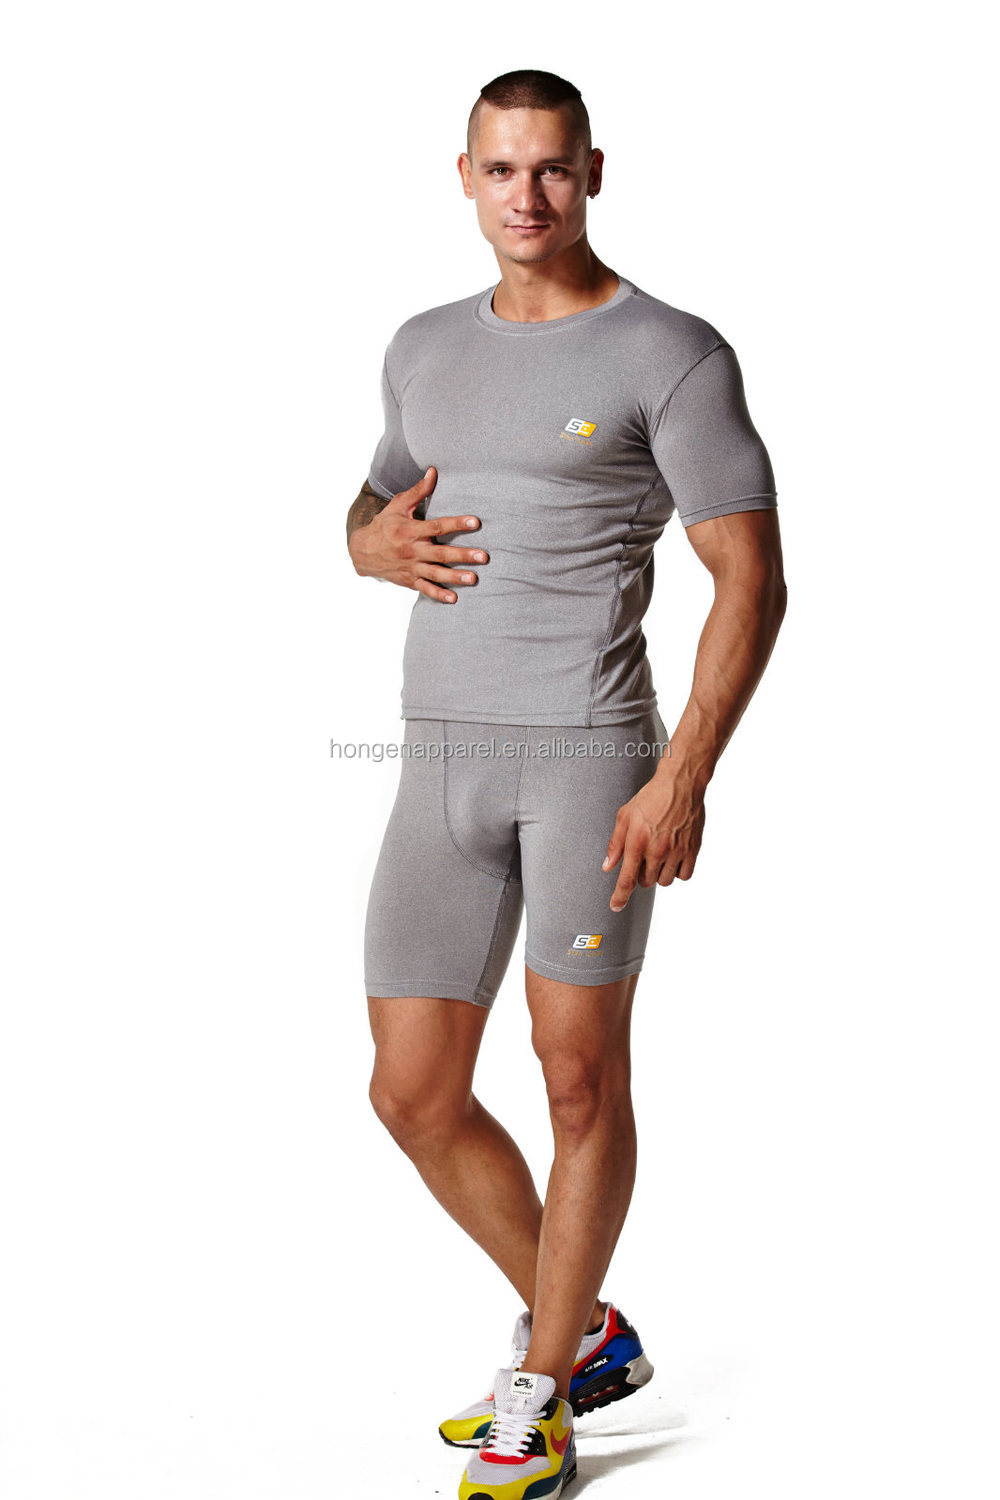 Hongen apparel High quality compression gear, Custom-made Performance Cheap New Style Compression Shirts